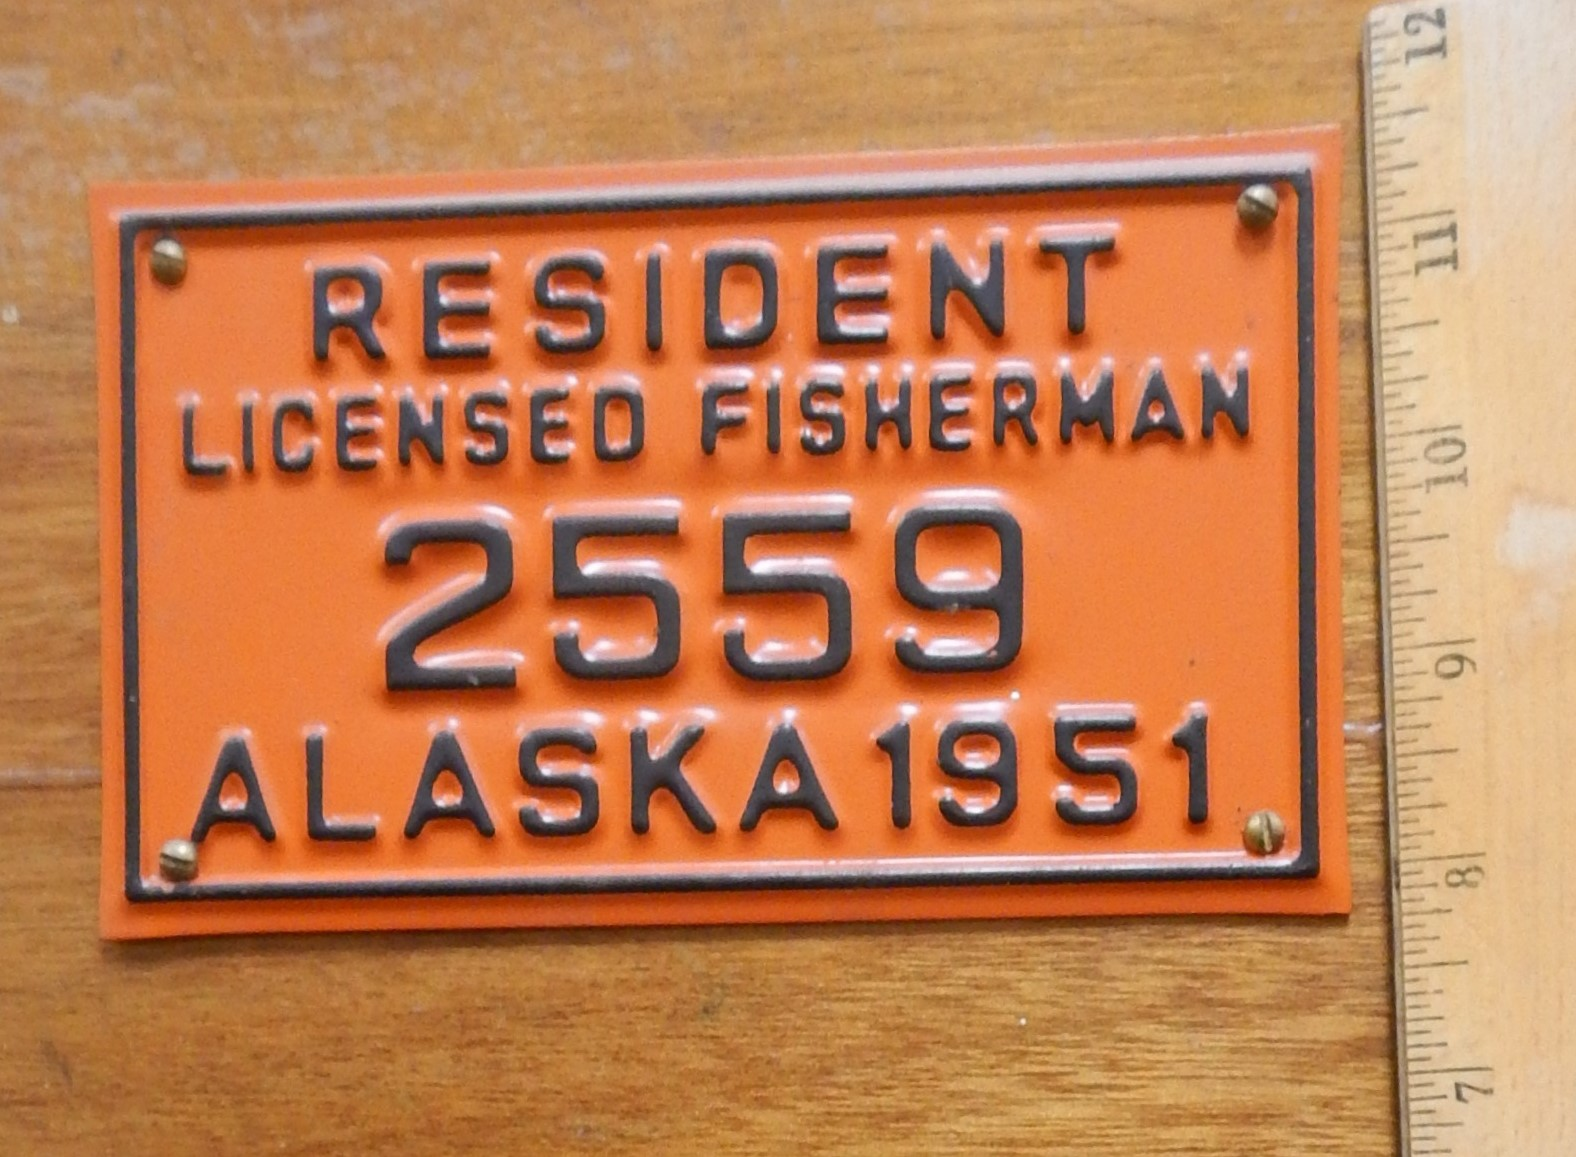 Storage wars everett wa what was a 1949 non resident for Washington non resident fishing license